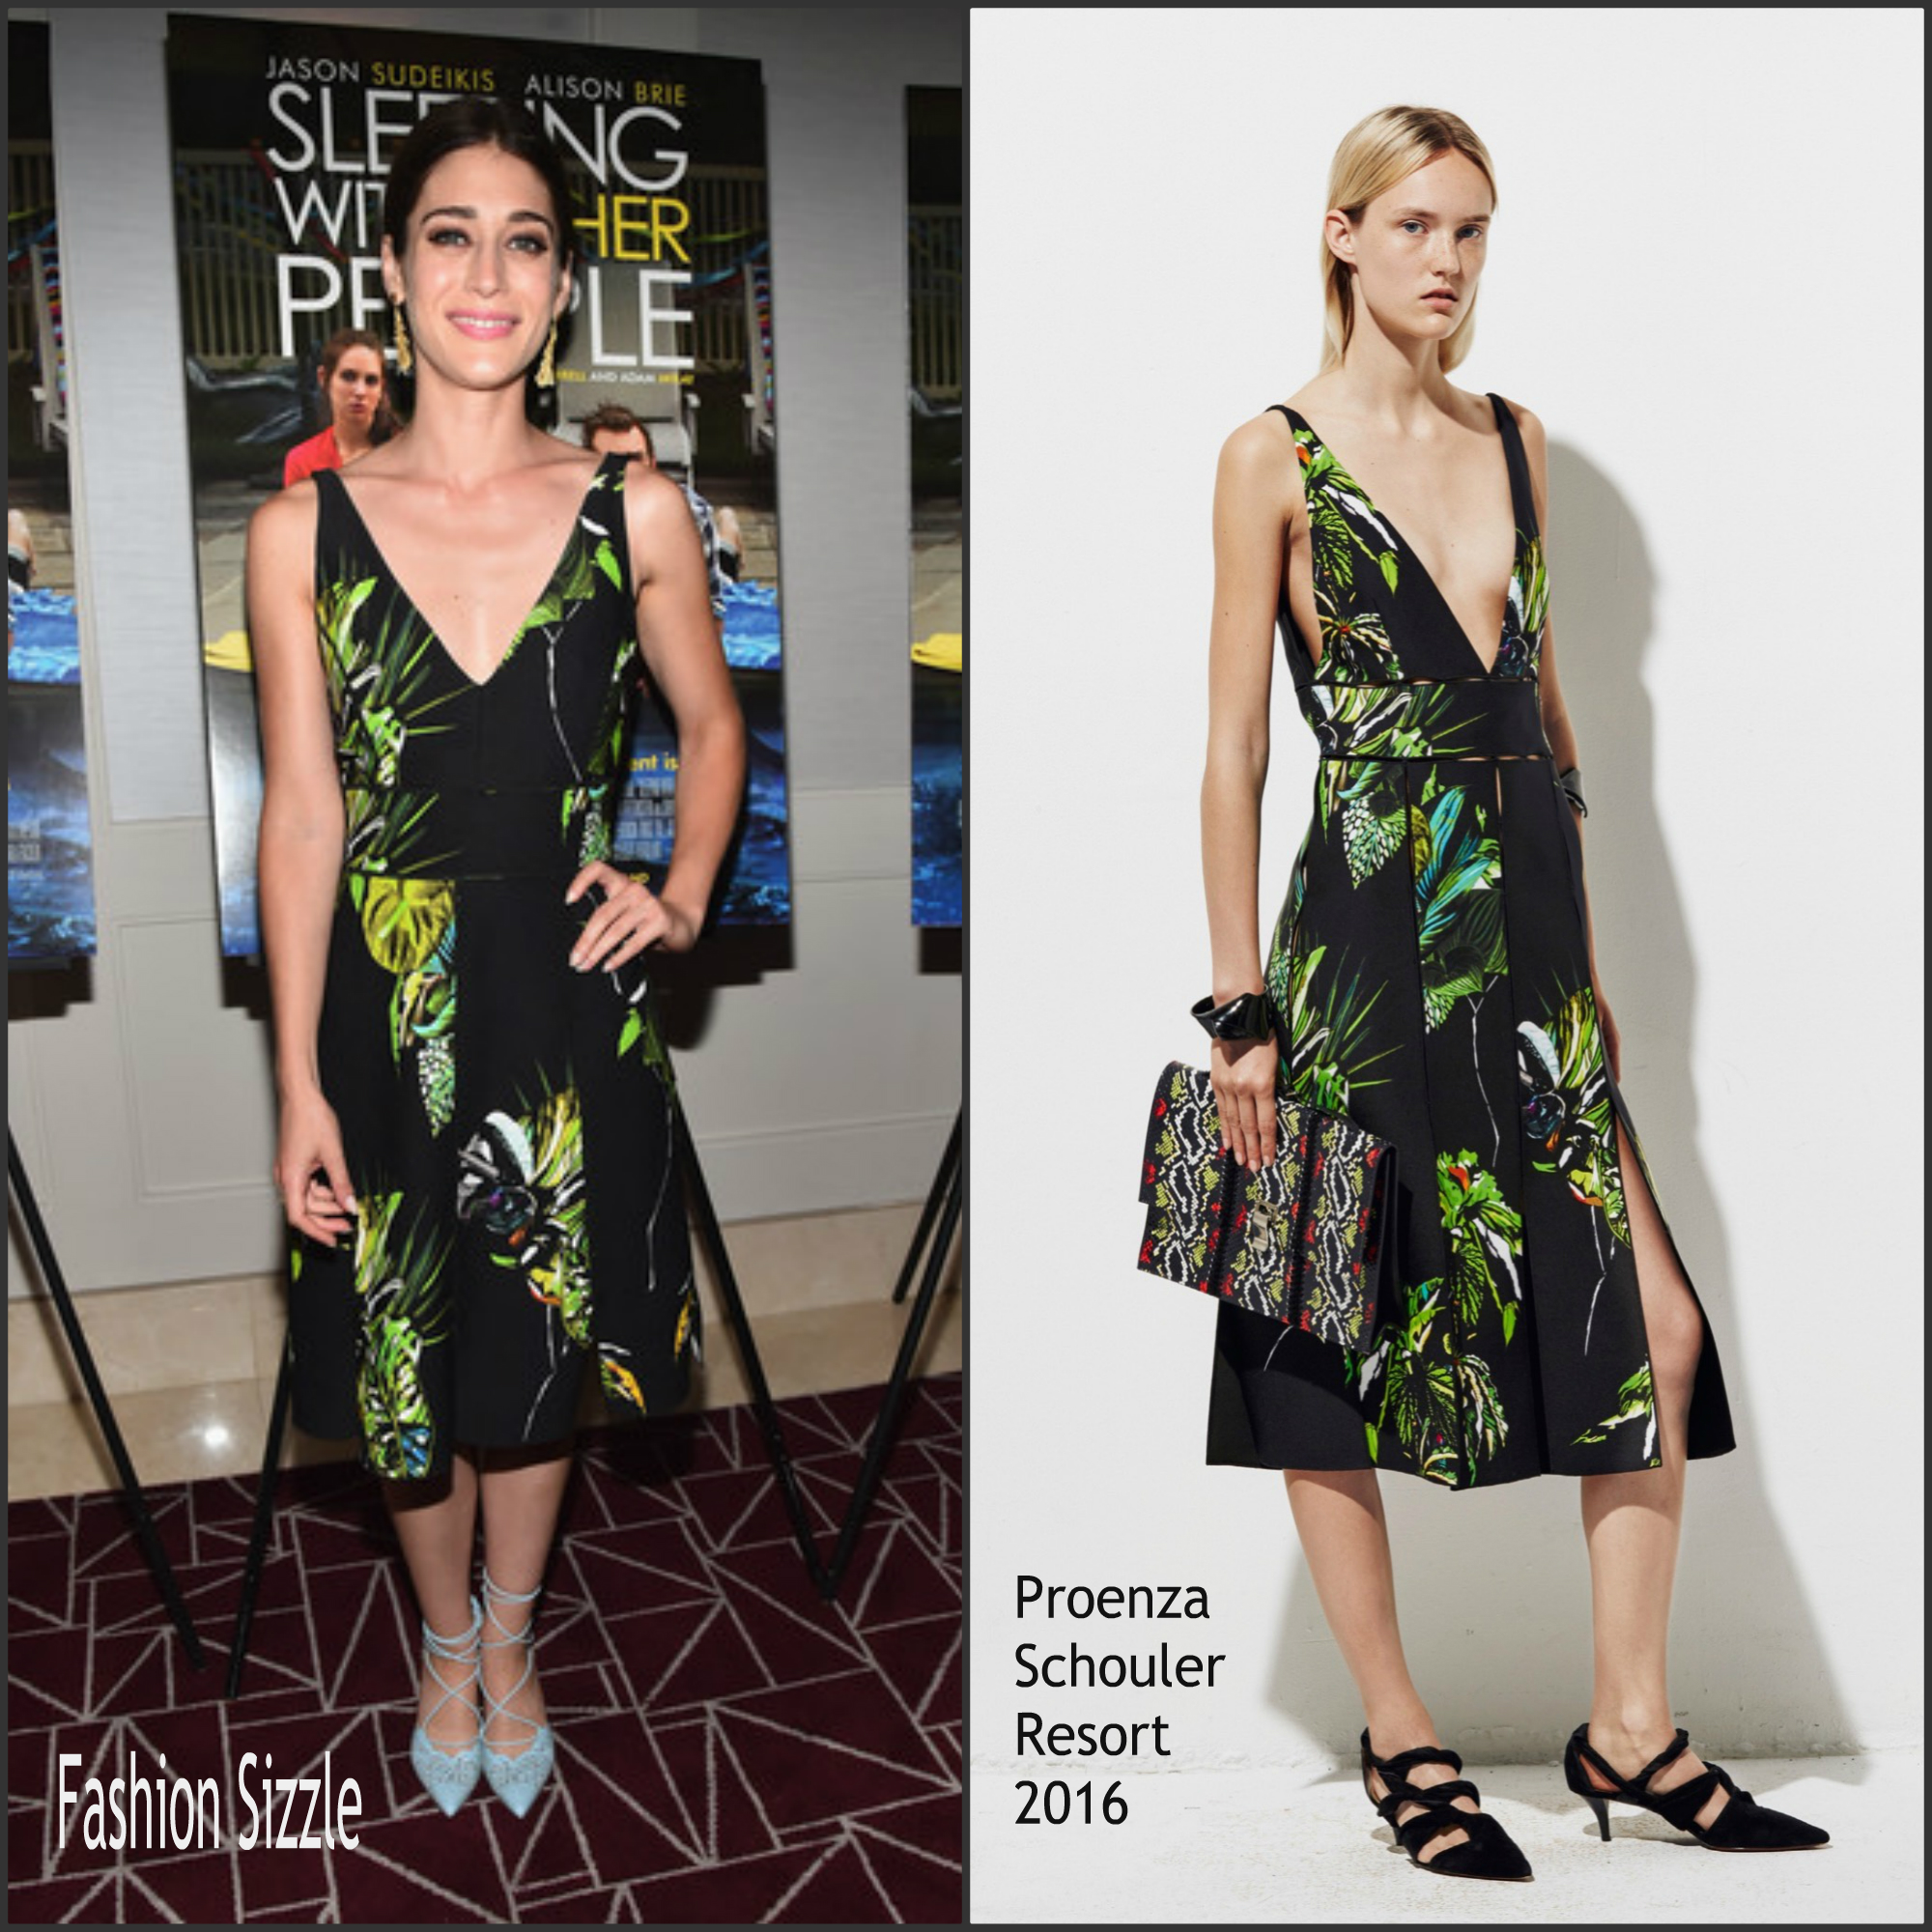 Lizzy-caplan-in-proenza-schouler-at-sleeping-with-other-people-la-screening